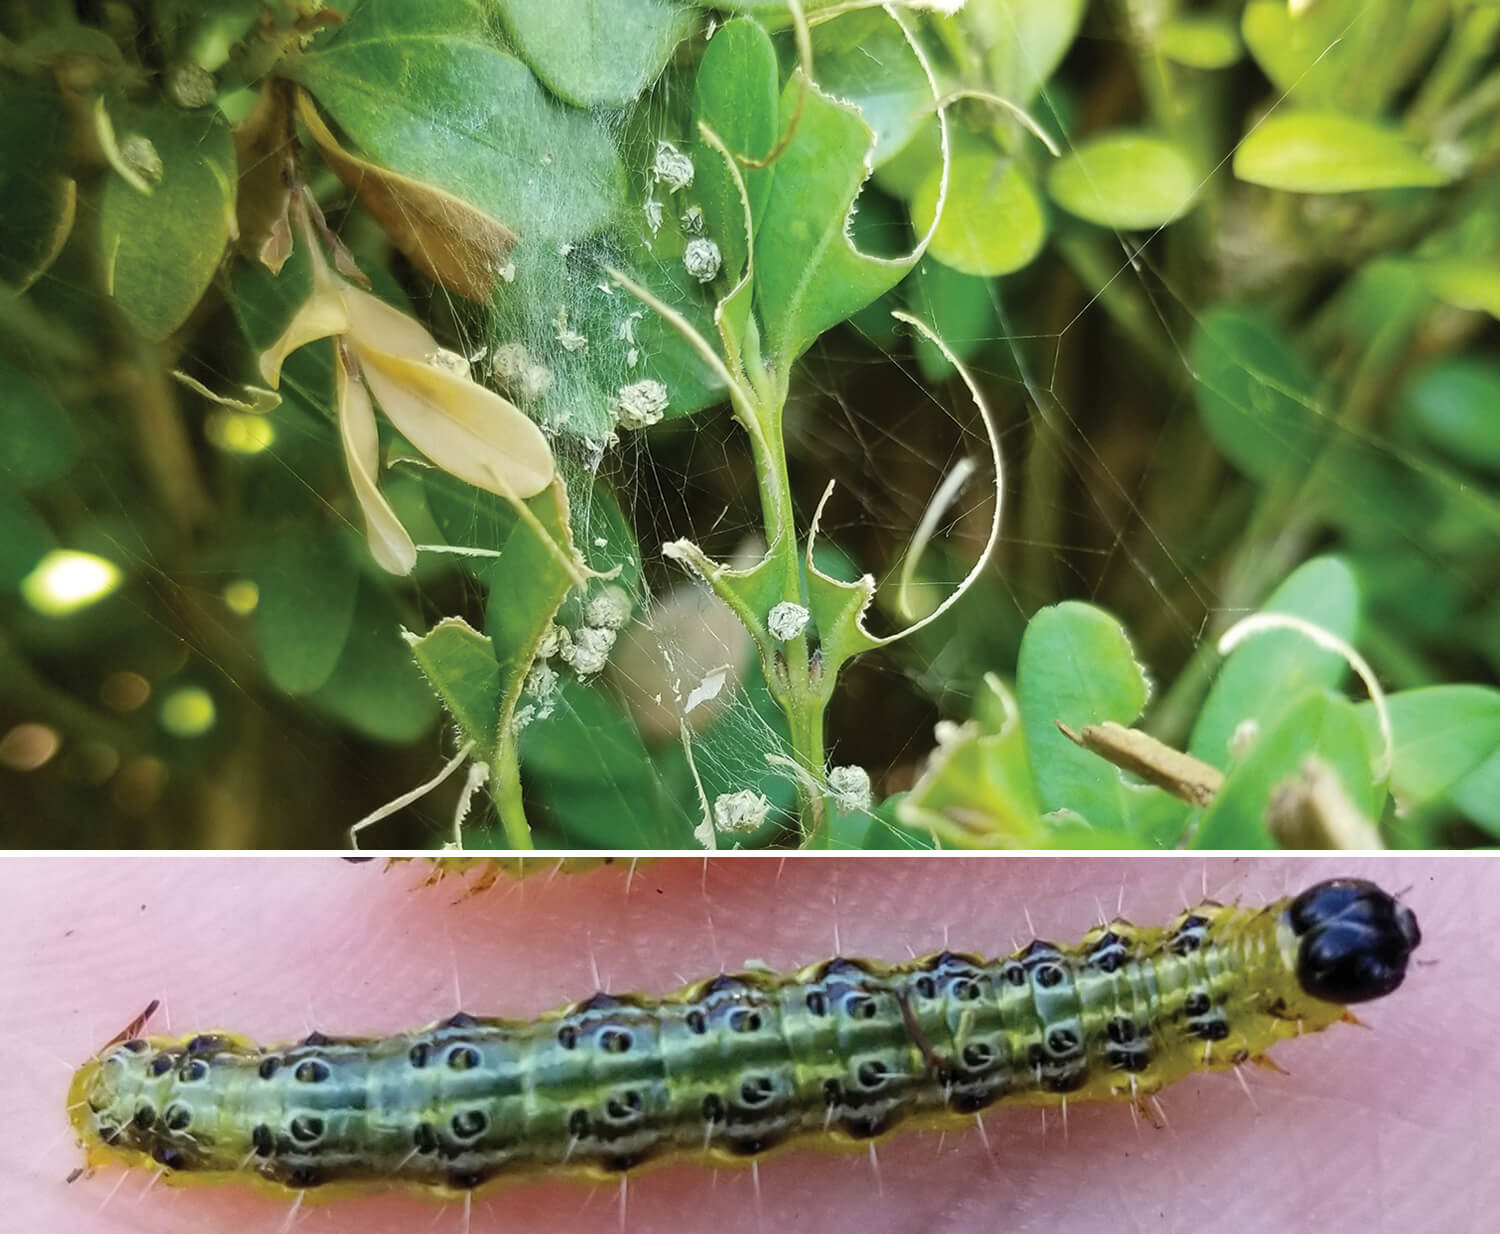 boxwood damage and the larvae that causes it